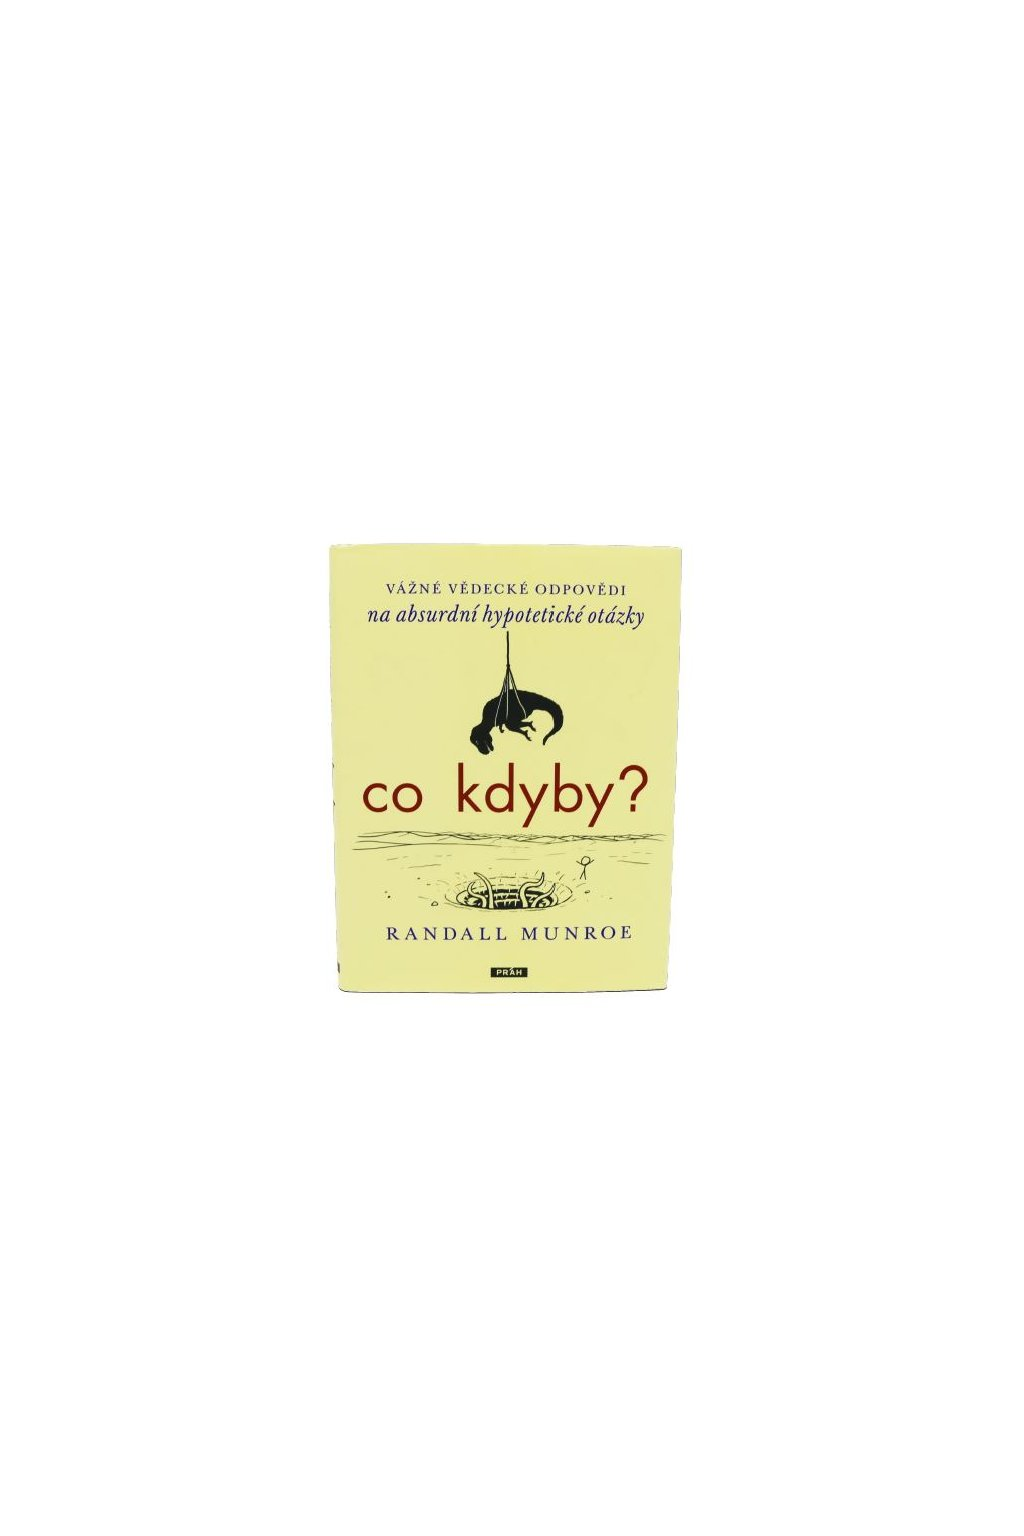 Co kdyby?